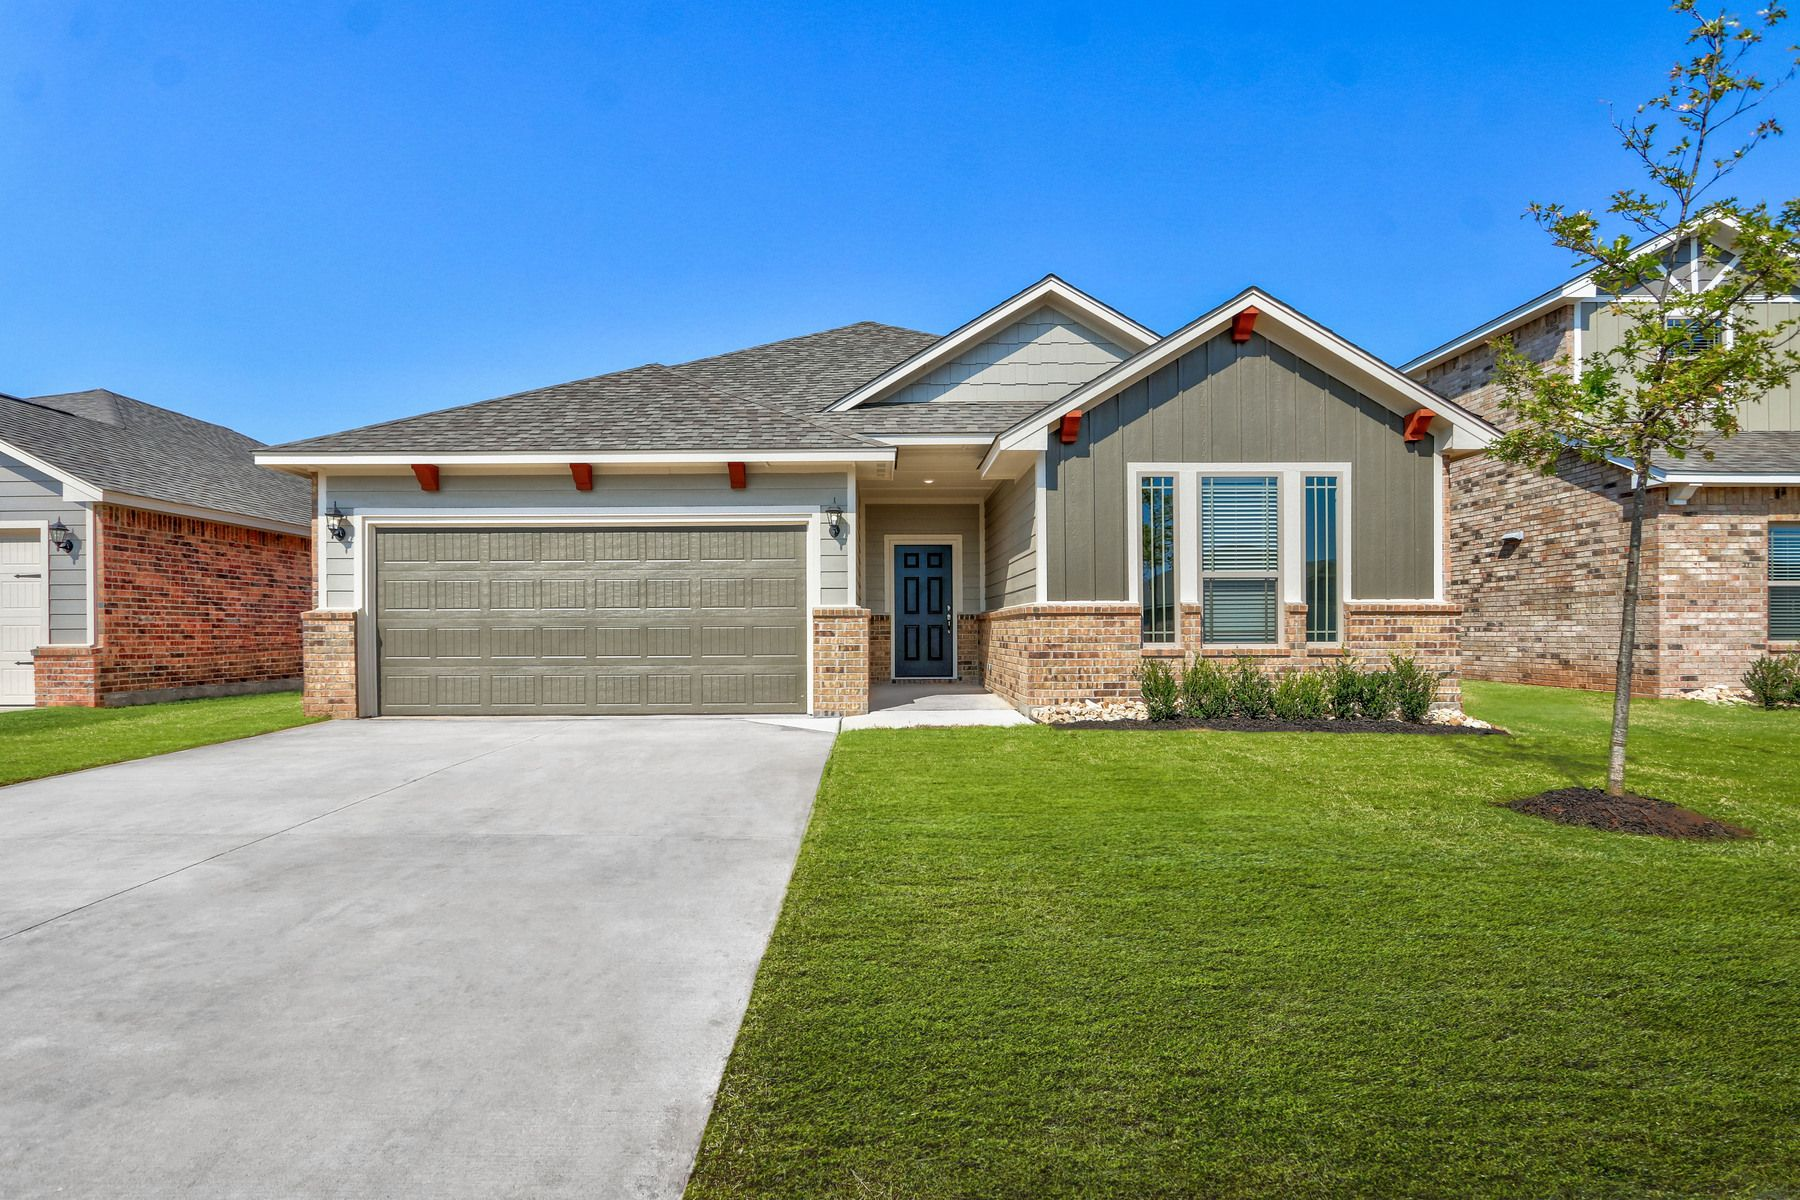 The Keaton by LGI Homes:The Keaton is a large, one-story plan at Wyndemere.